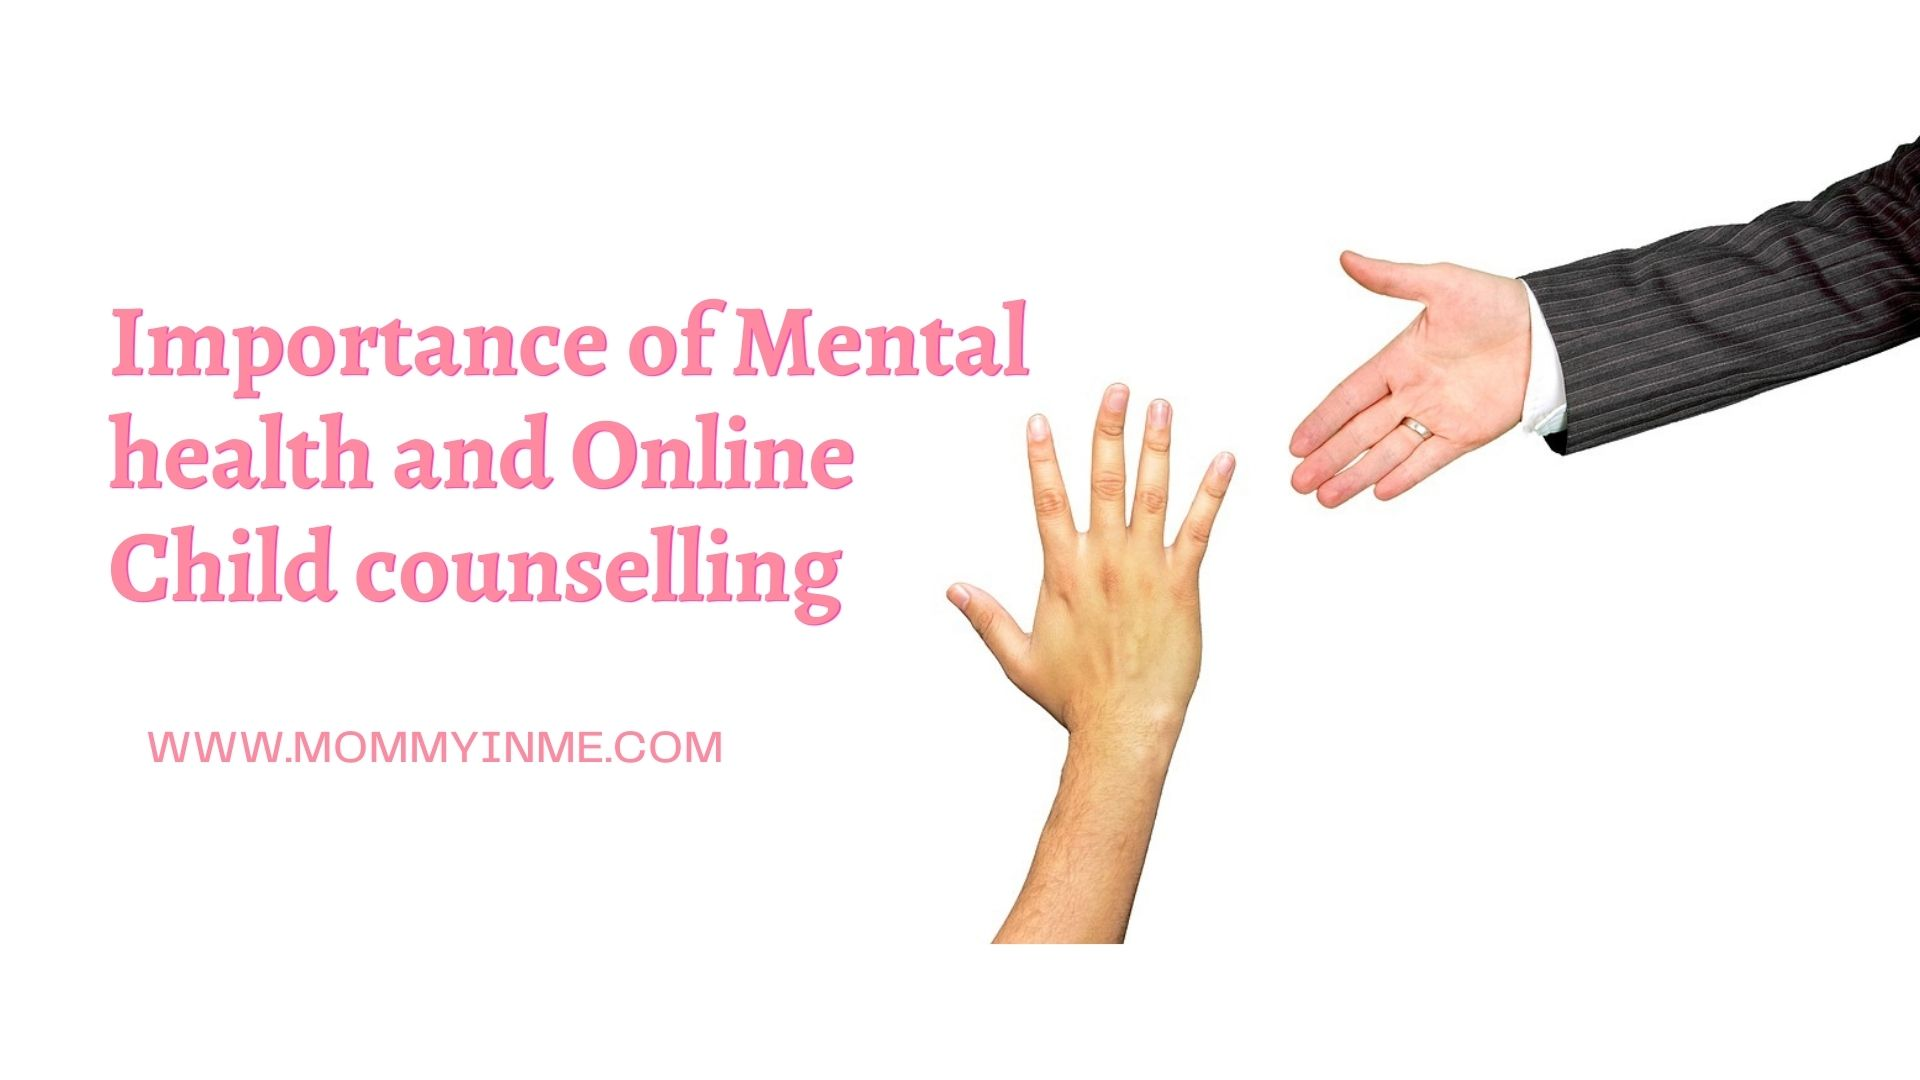 Importance of Mental health and Online Child counselling